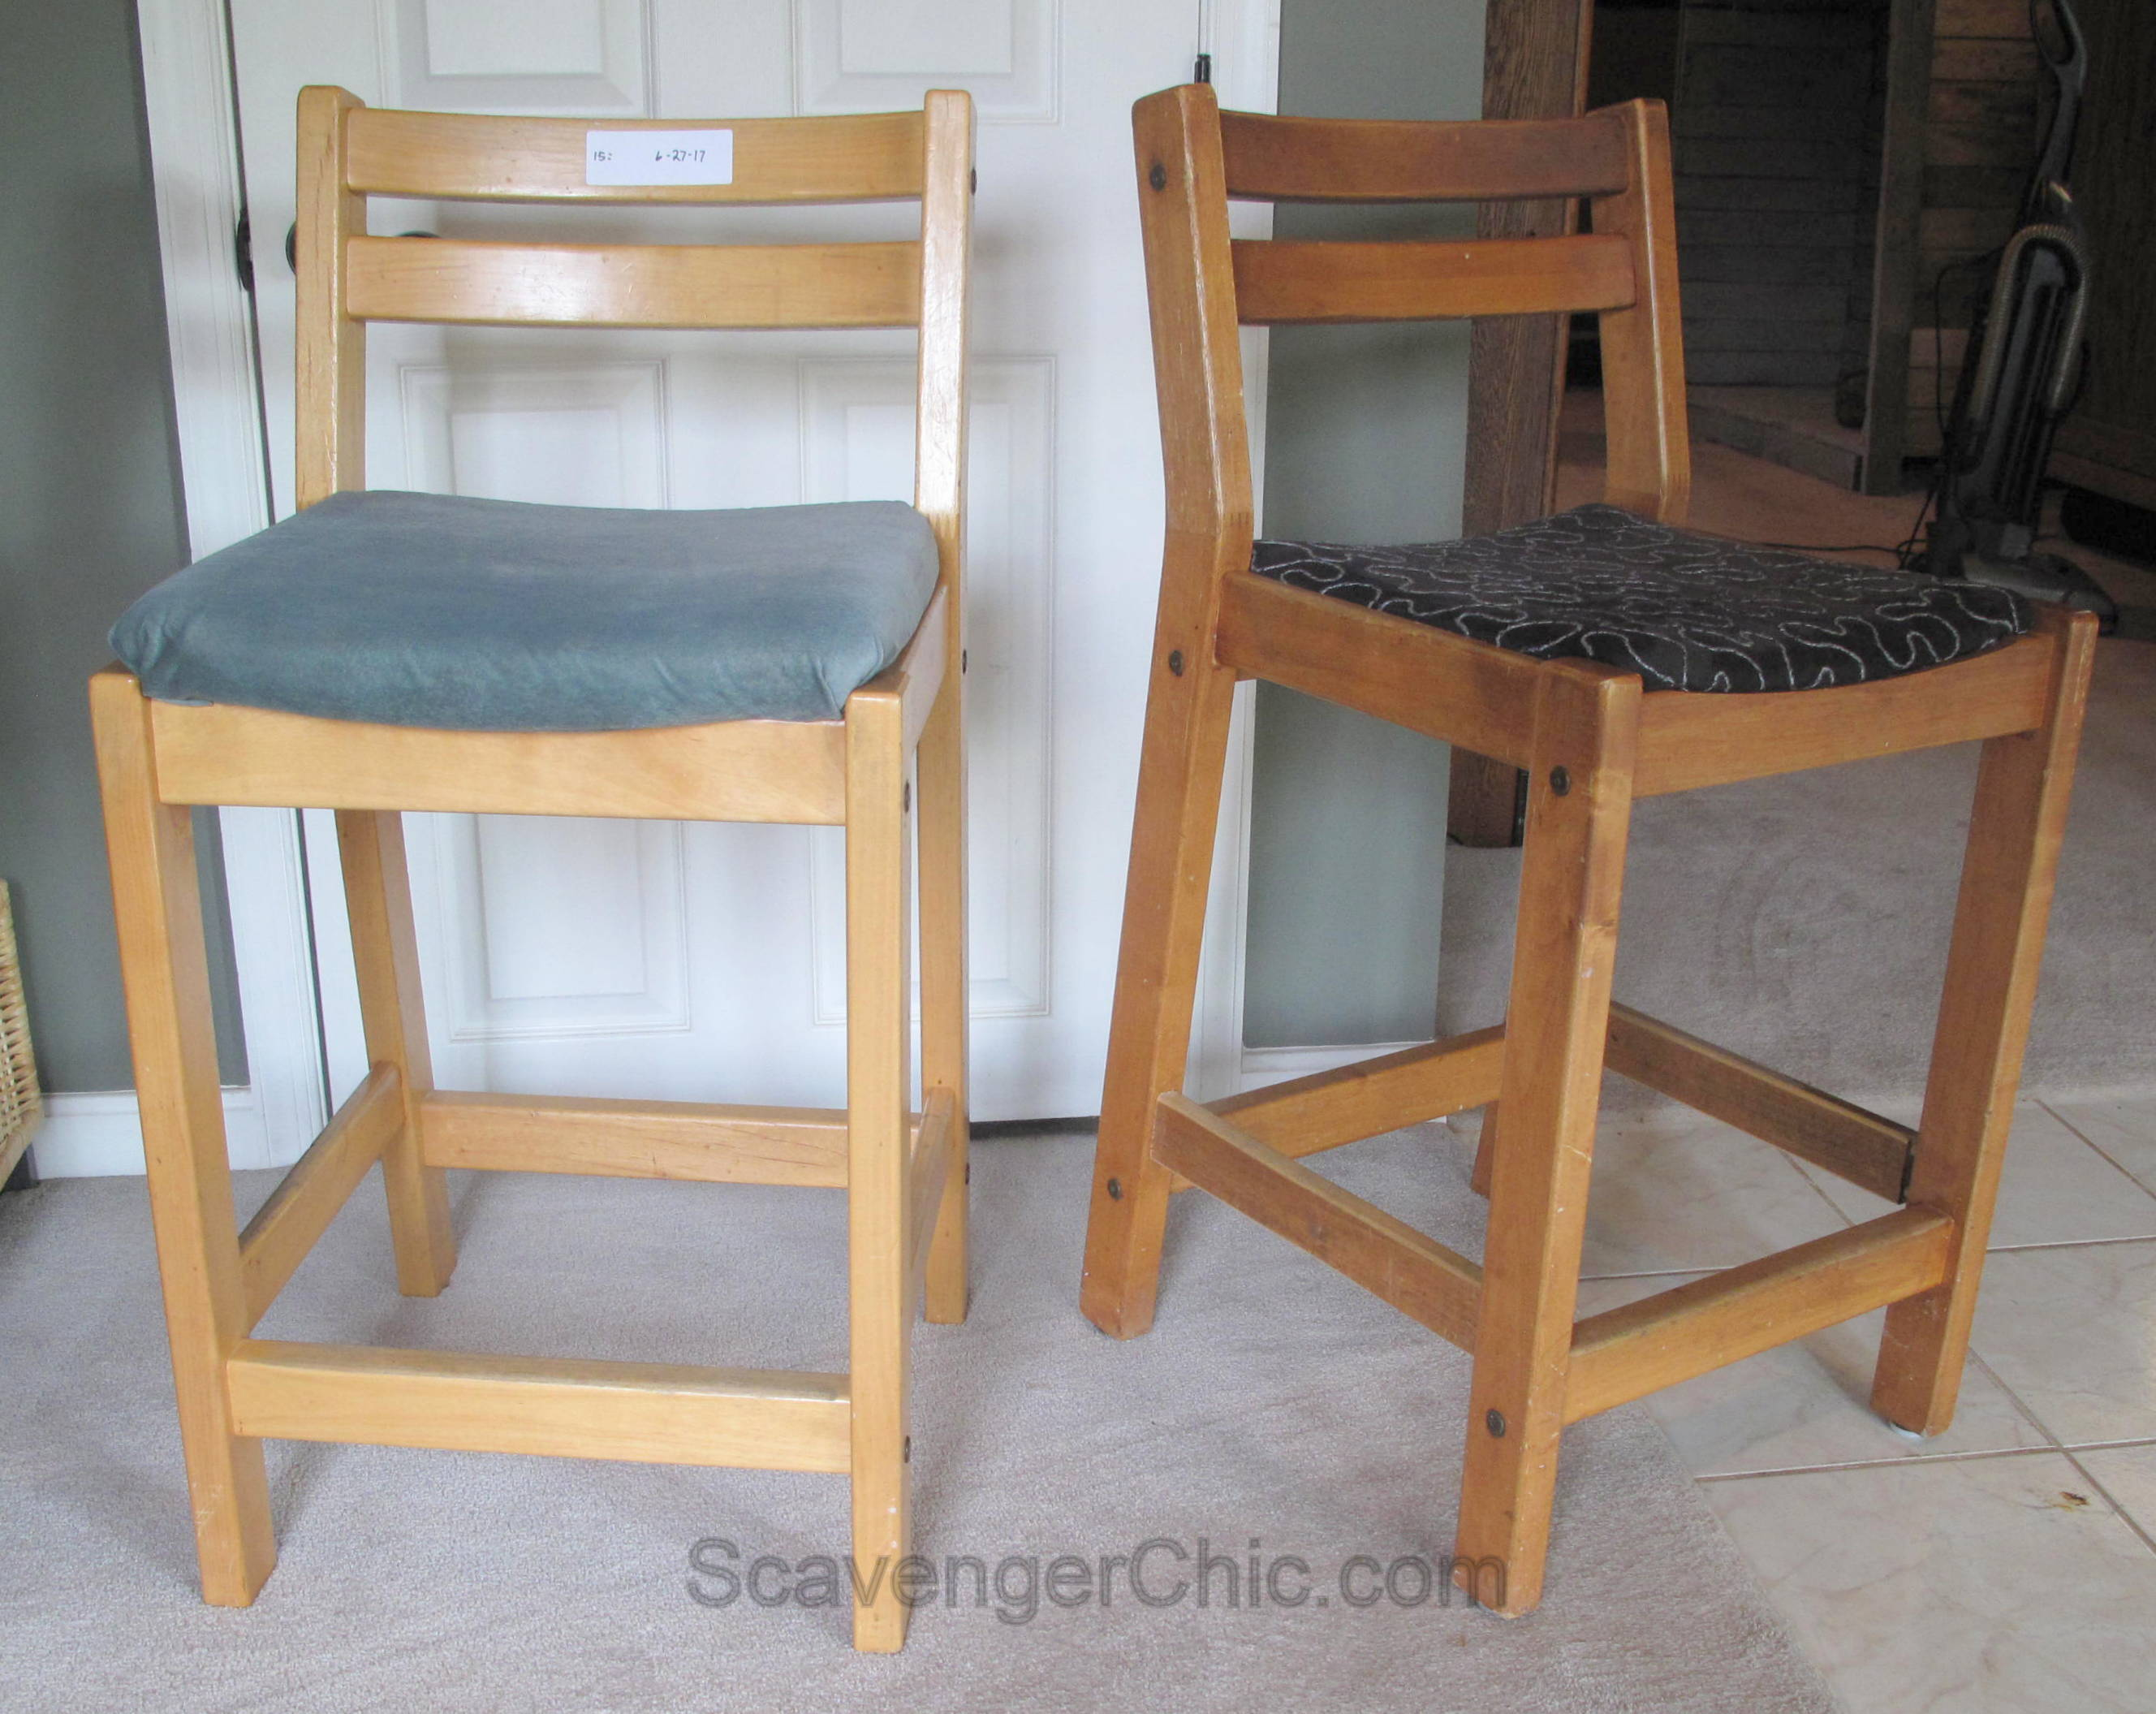 Scavenger Chic - Projects for your Home